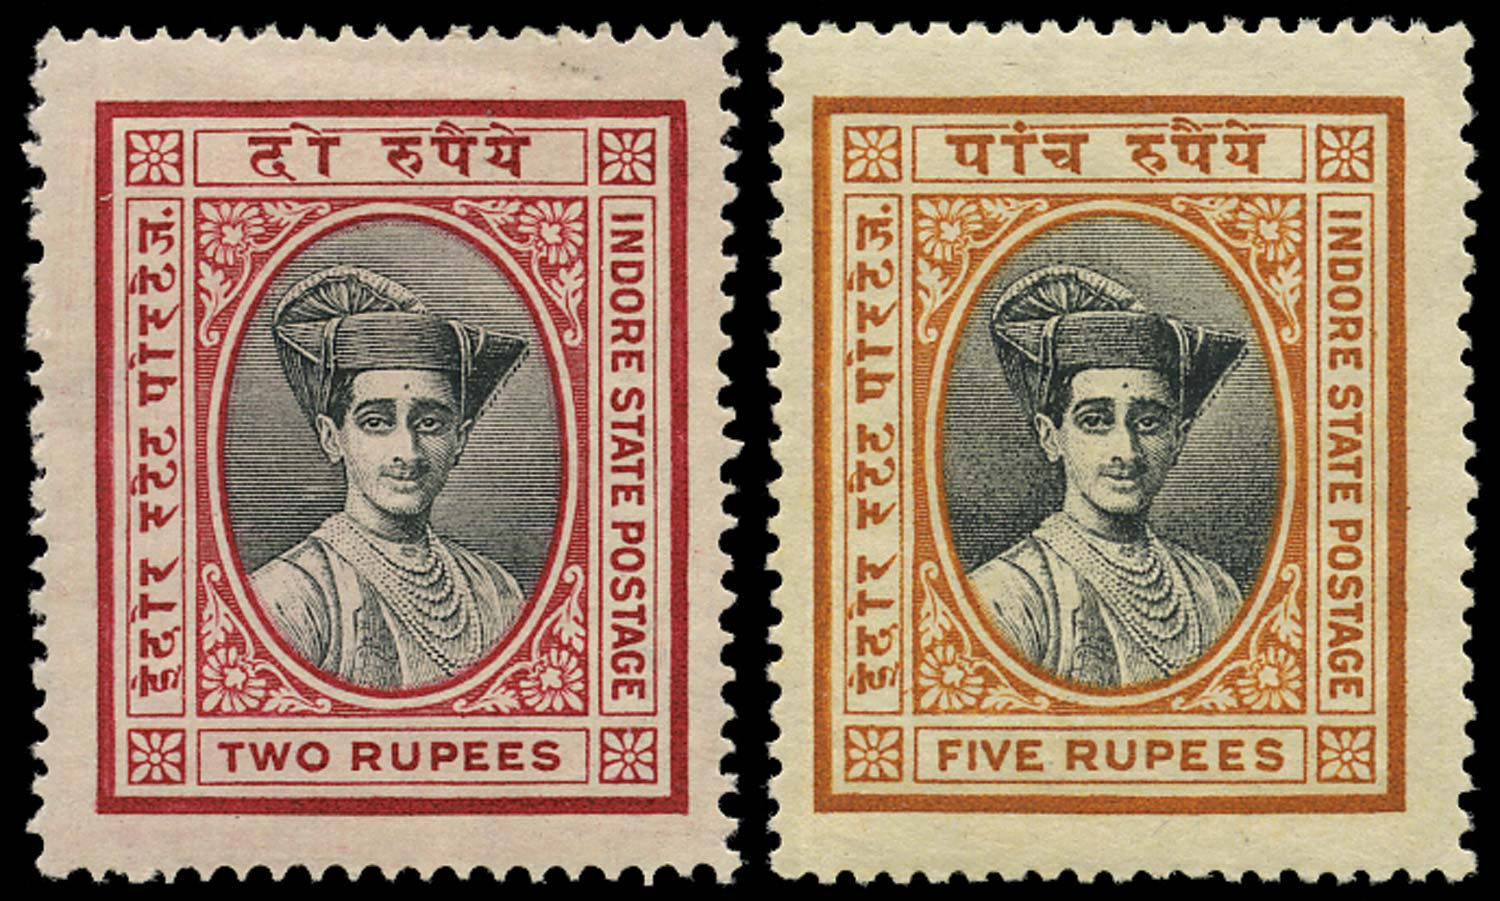 I.F.S. INDORE 1927  SG31/2 Mint